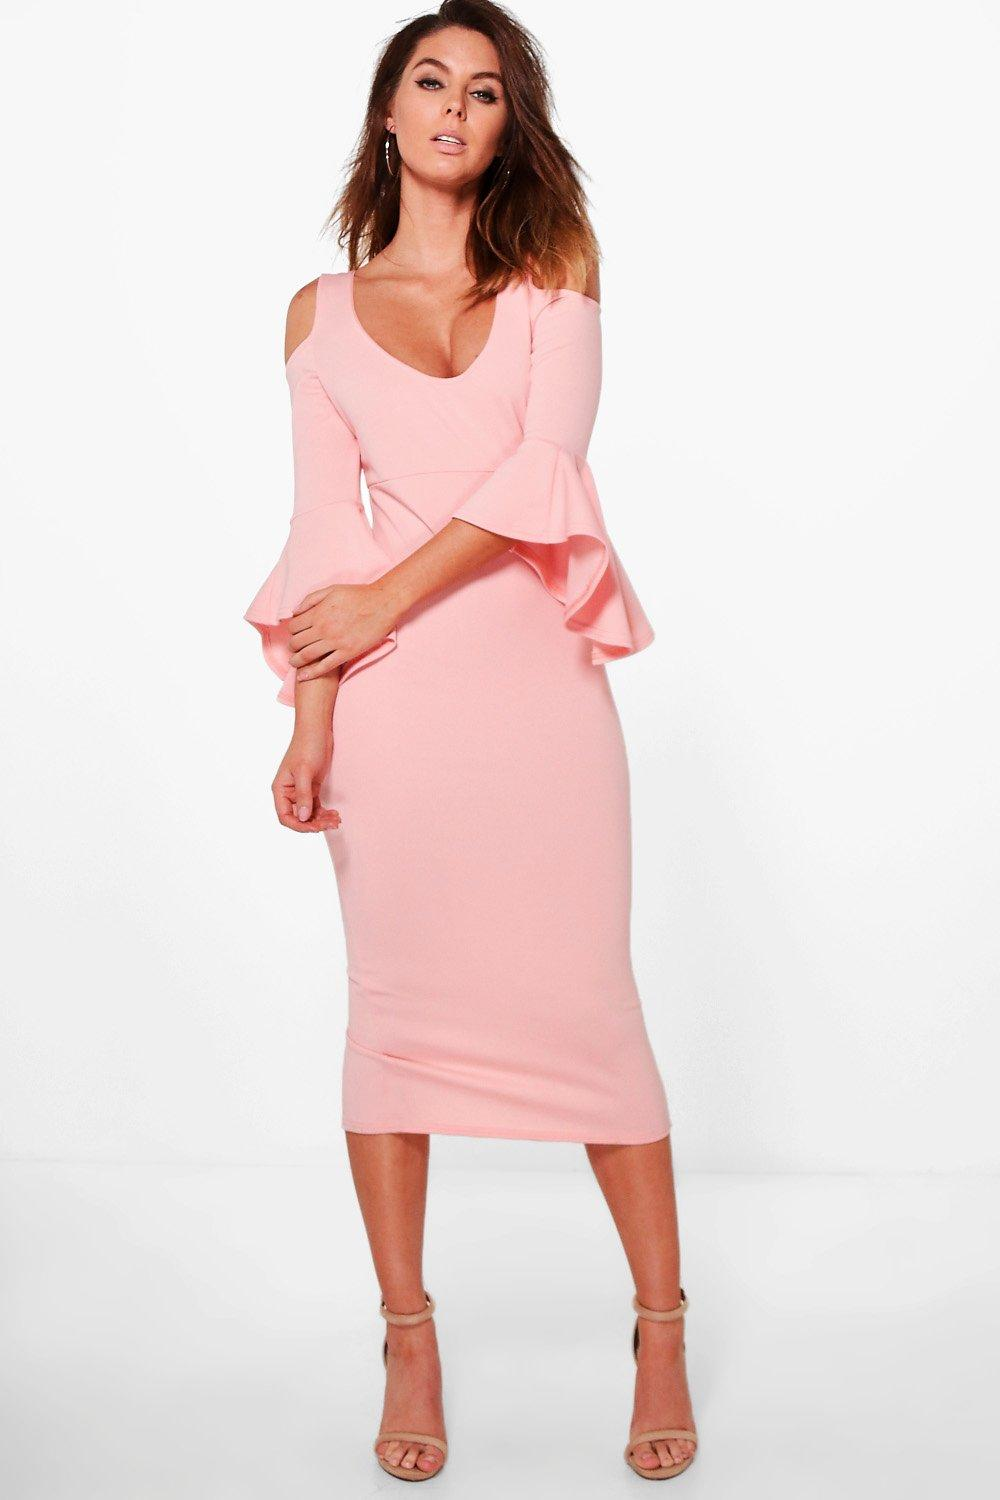 4001595d046255 Open Shoulder Frill Midi Dress. Hover to zoom